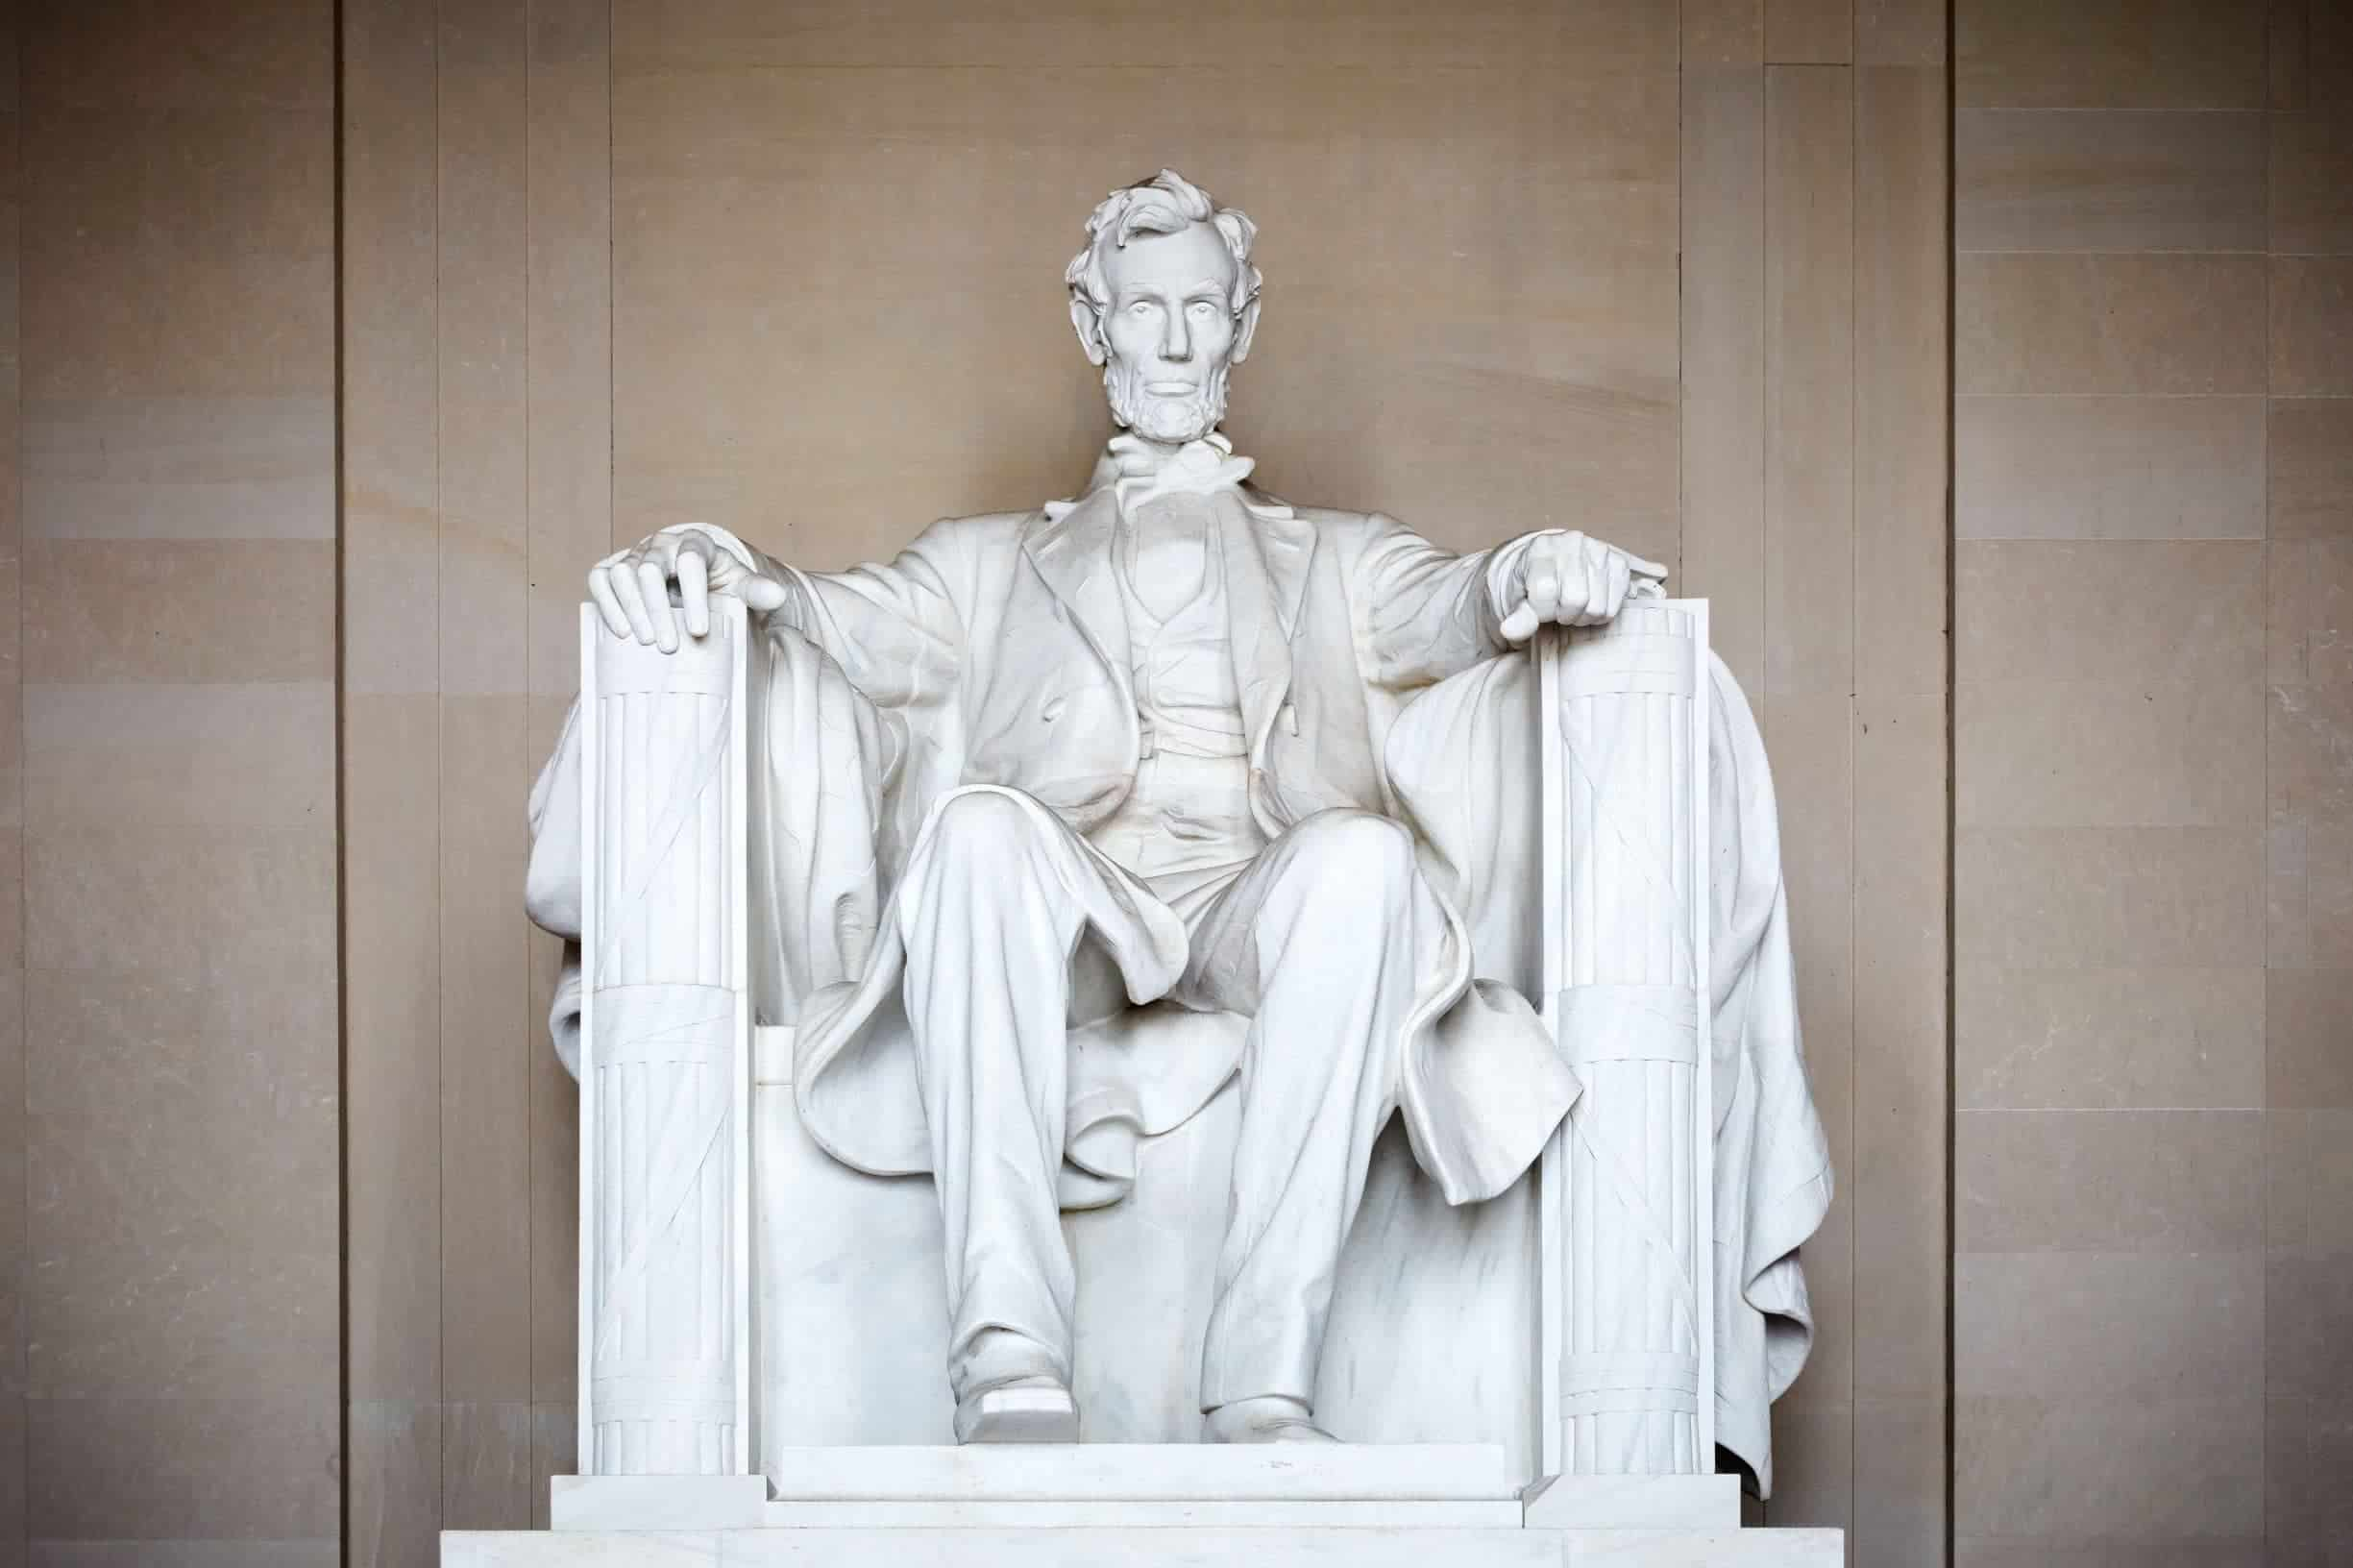 Lincoln Memorial Statue in Washington, DC